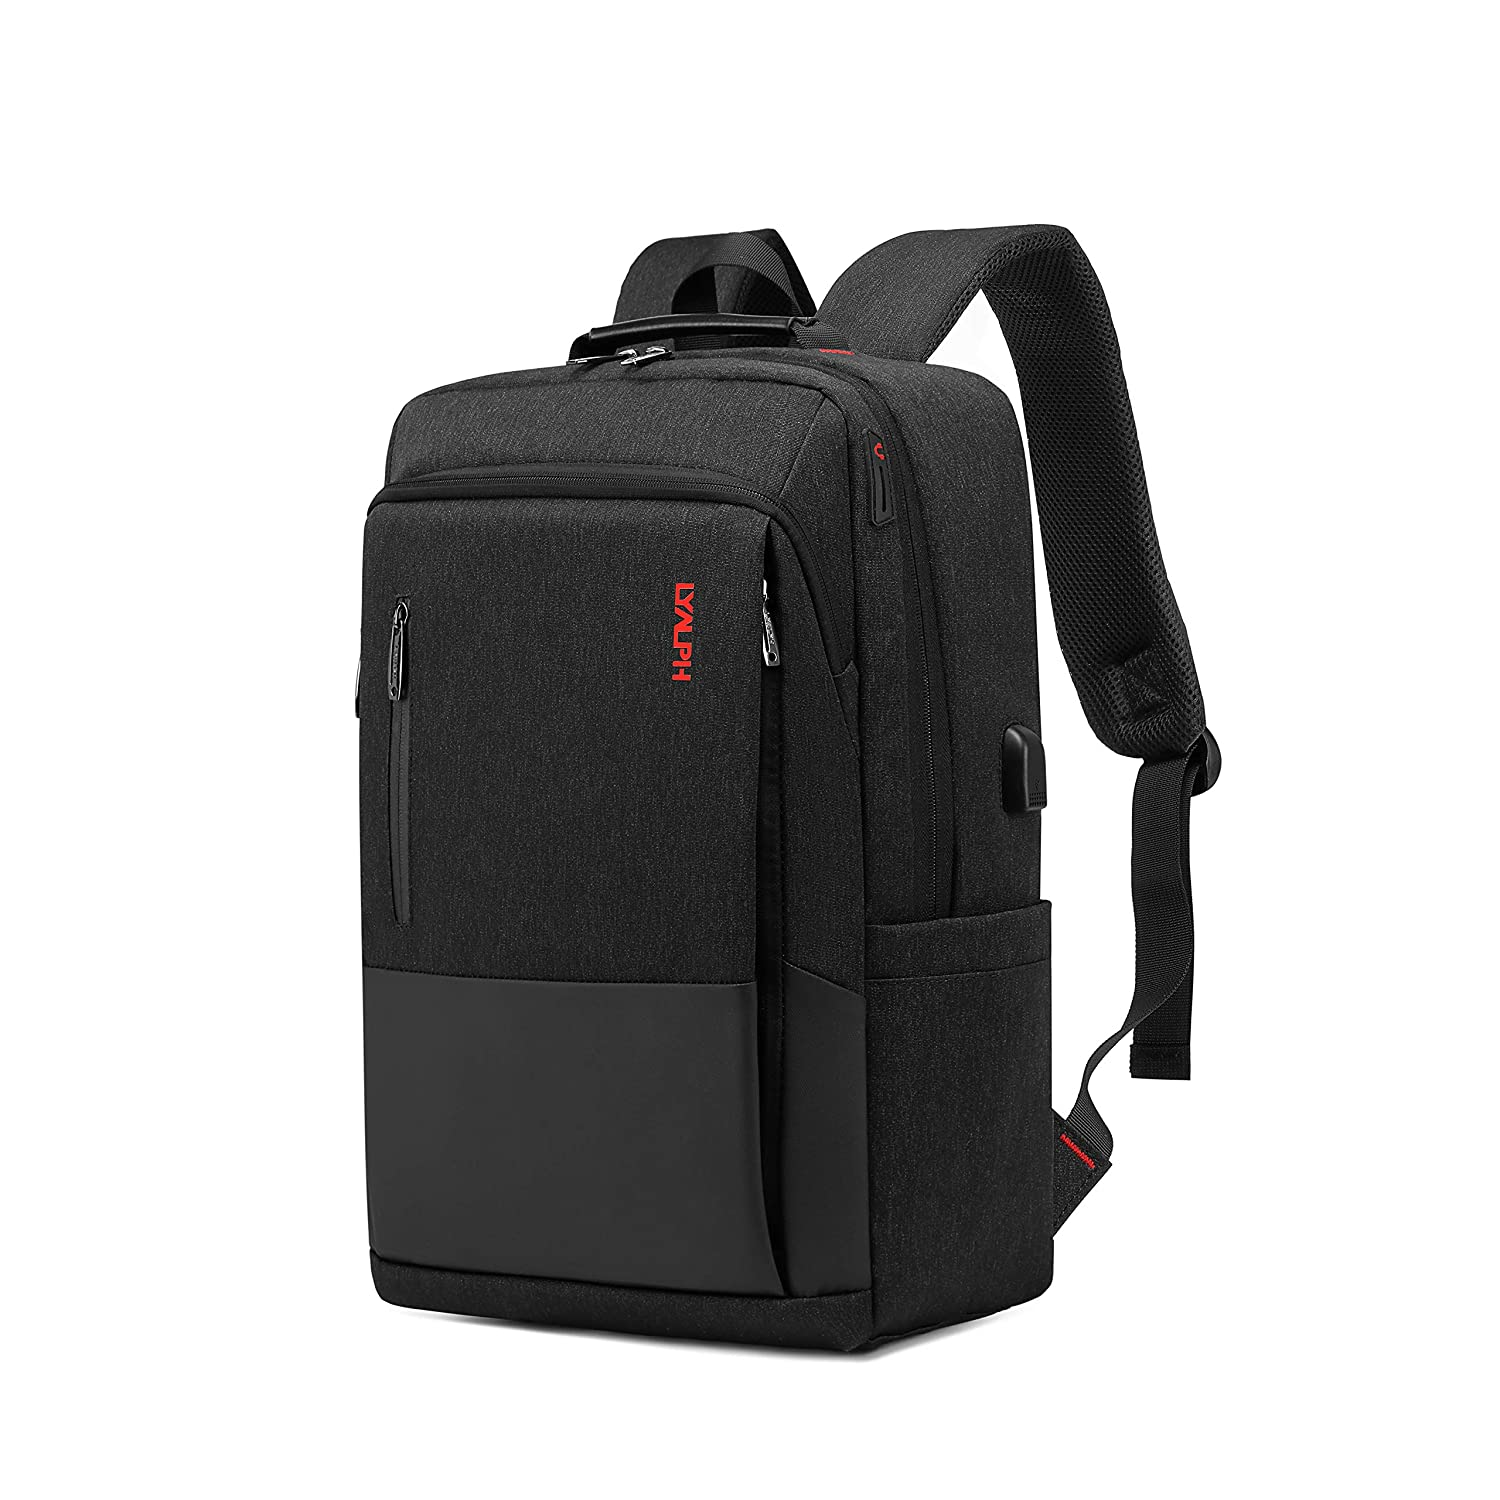 Laptop Backpack For Travel,Fits 15.6-17 Inch Laptop and Notebook